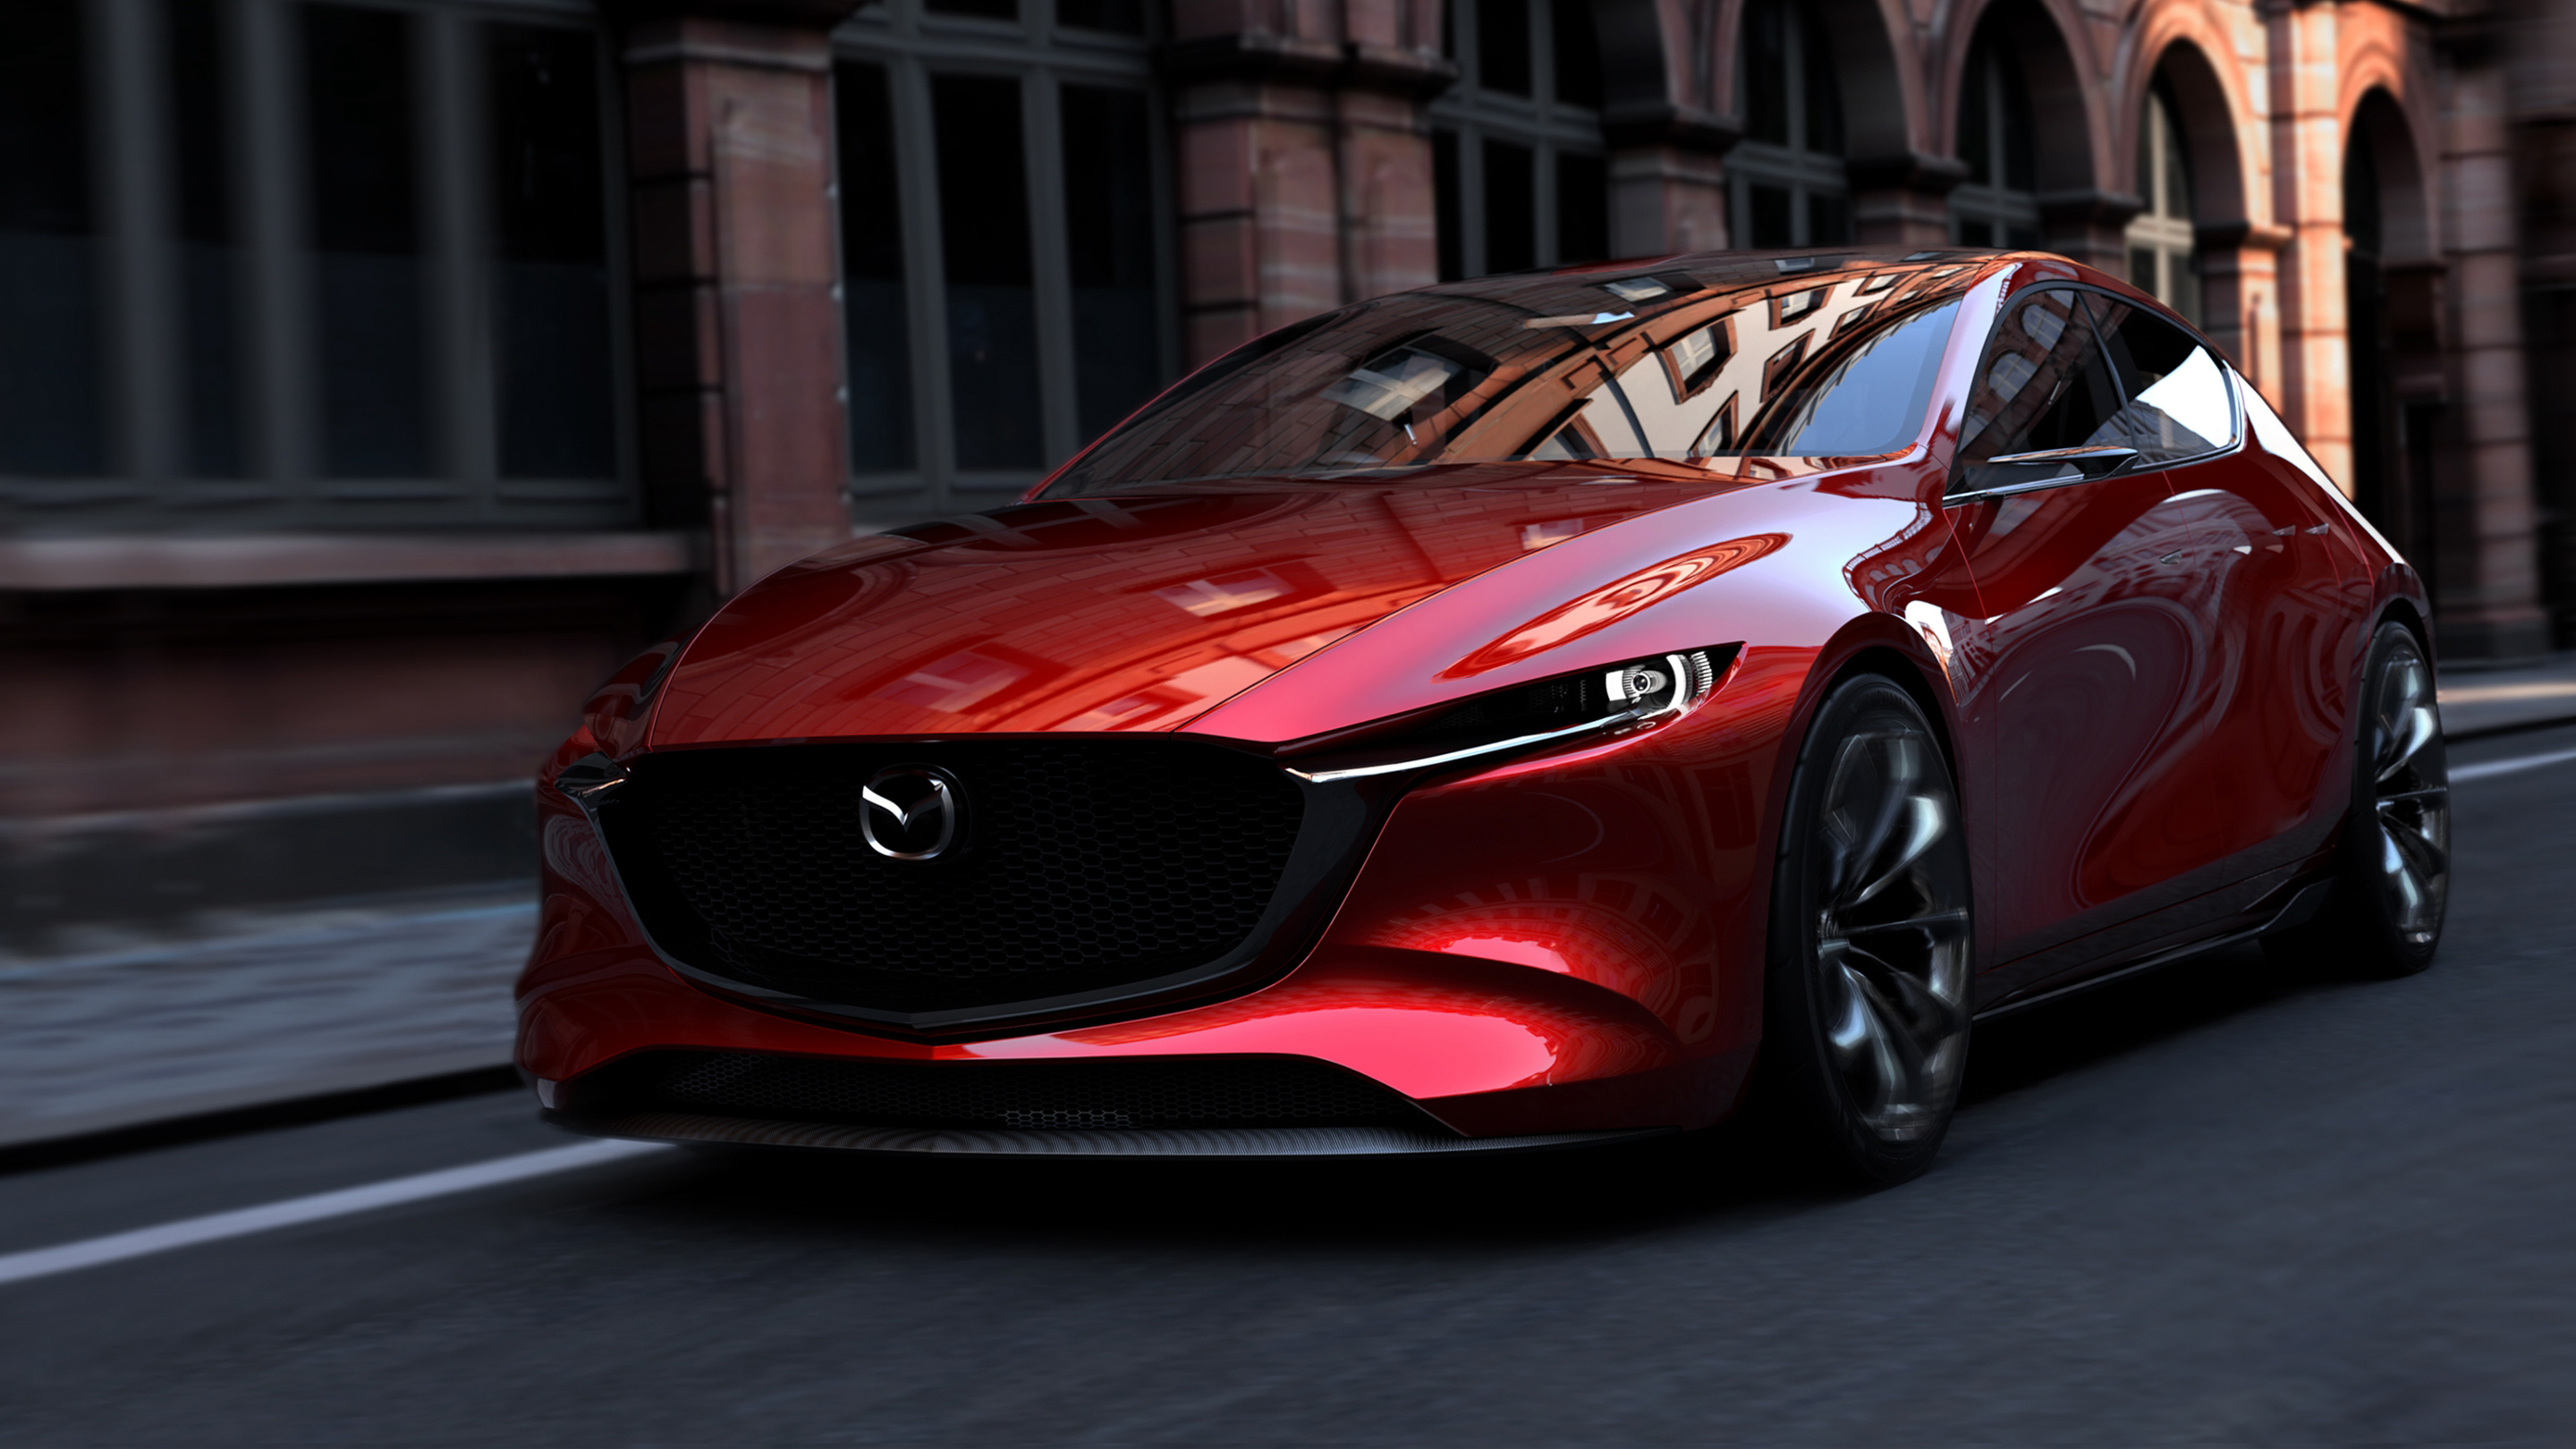 2880x1620 - Mazda Wallpapers 4